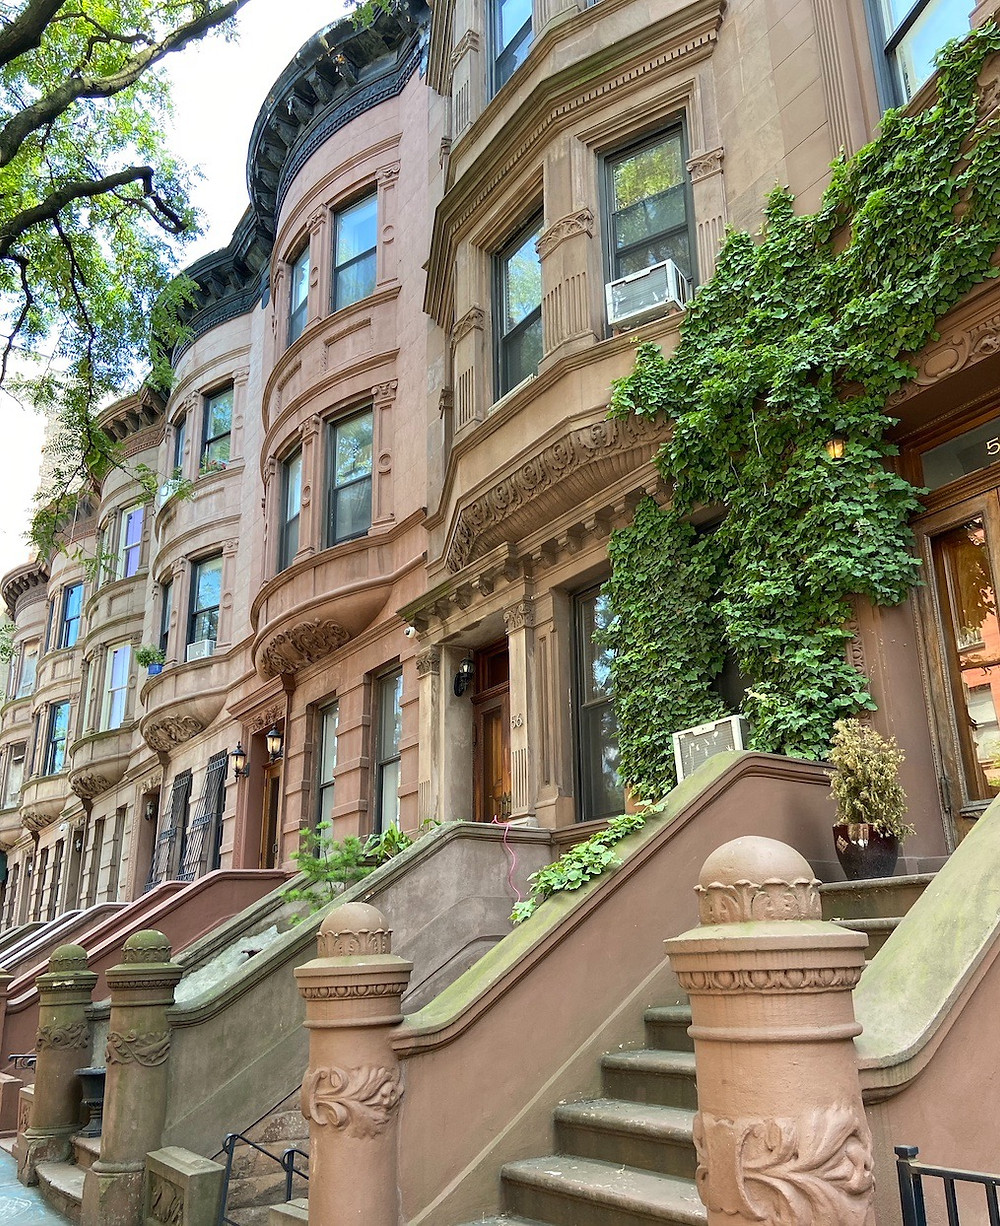 A row of Harlem brownstones on West 120th Street